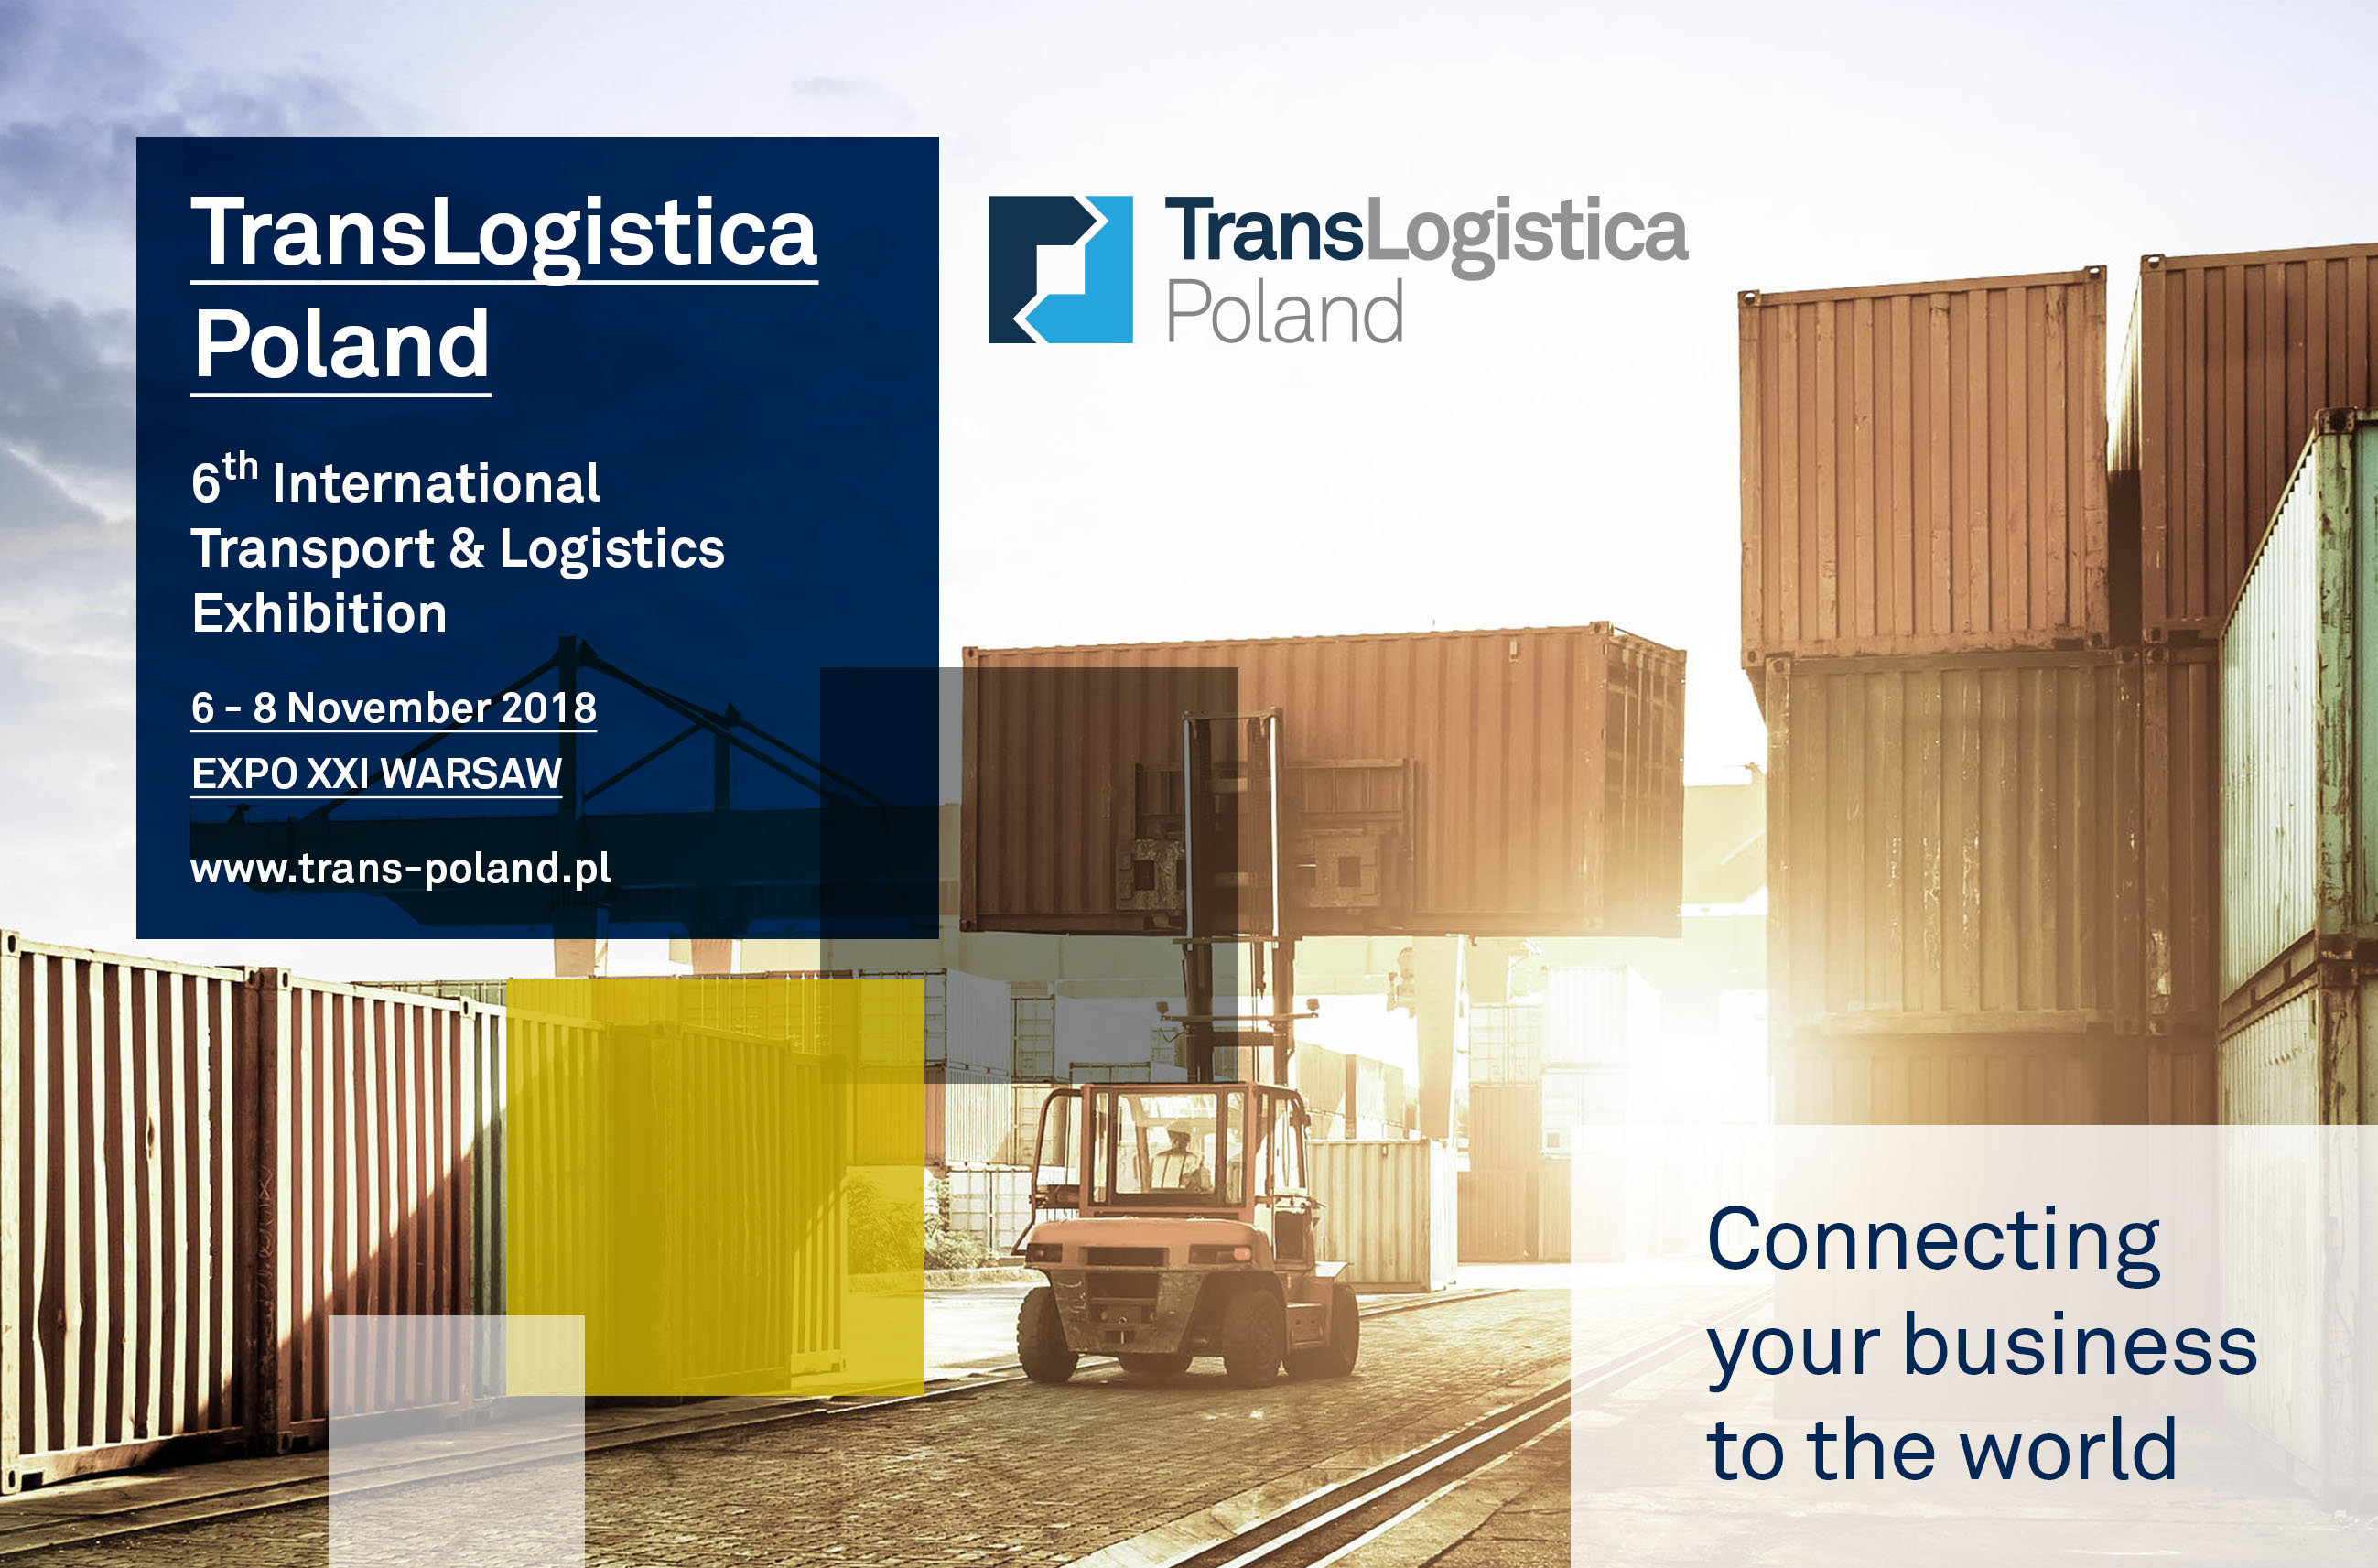 6th International Transport & Logistics Exhibition TransLogistica Poland – Transport&Logistics industry meets in Warsaw (6-8 November 2018)